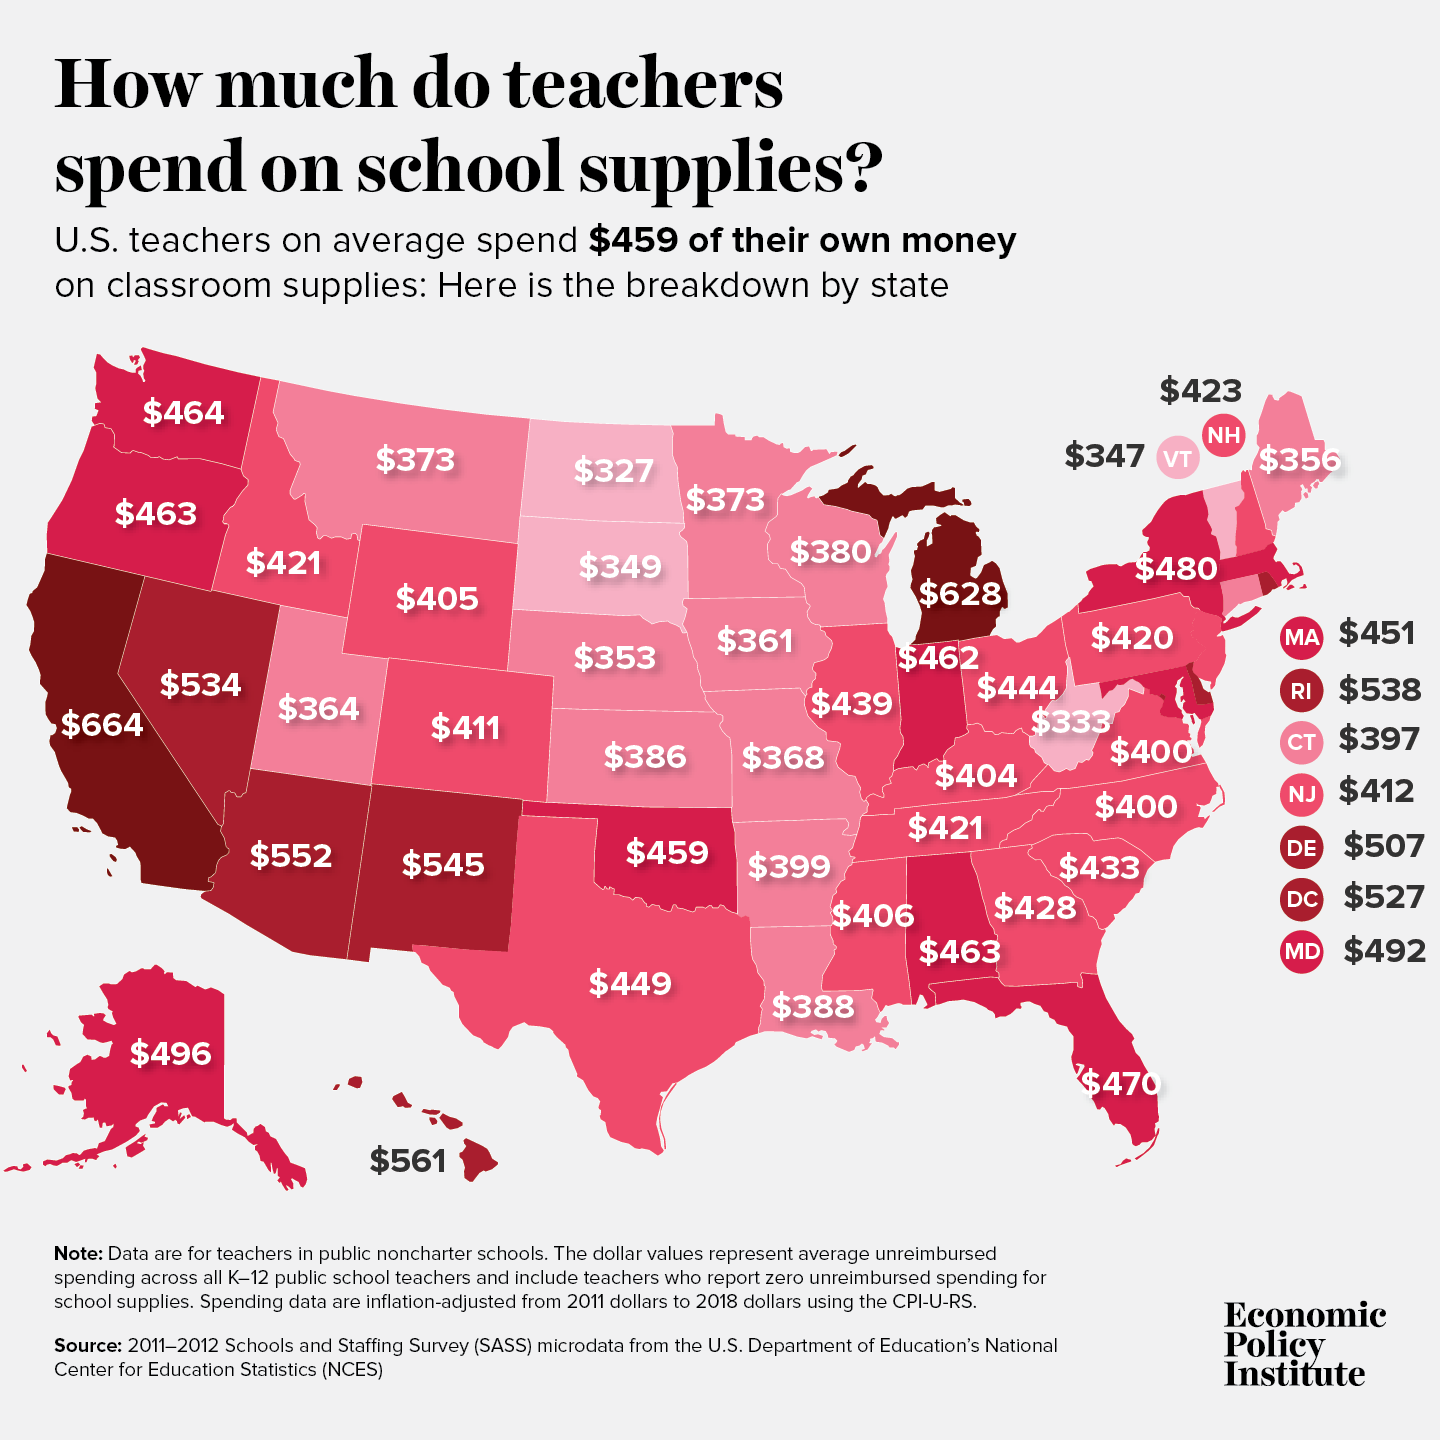 Teachers pay out-of-pocket to keep their classrooms clean of COVID-19: Teachers already spend on average $450 a year on school supplies 2